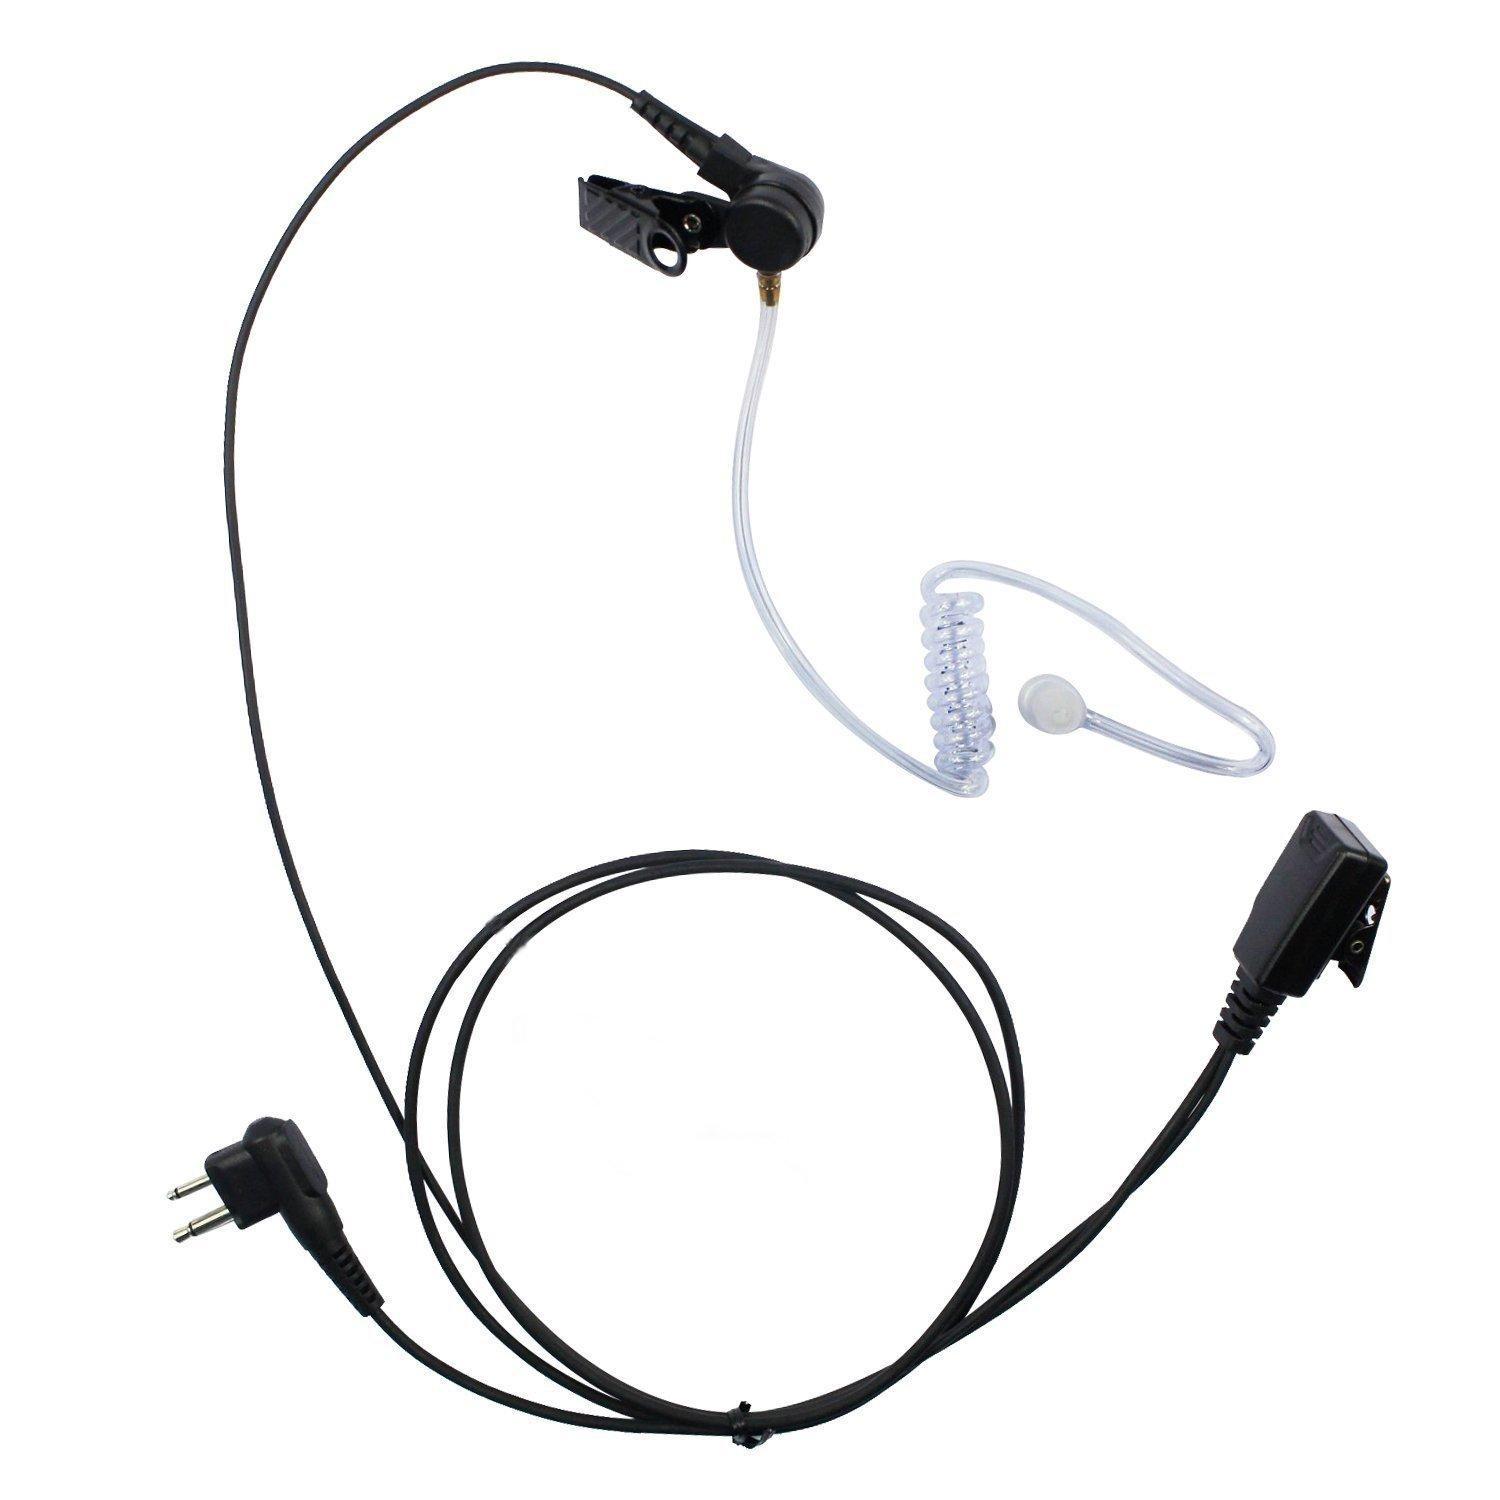 Covert Earbud Headset для наушников Mic для Motorola Radios Walkie Talkie Blackbox-U Blackbox-V AXV5100 AXV5100 AXU4100 CLS446 CP200 CLS1110